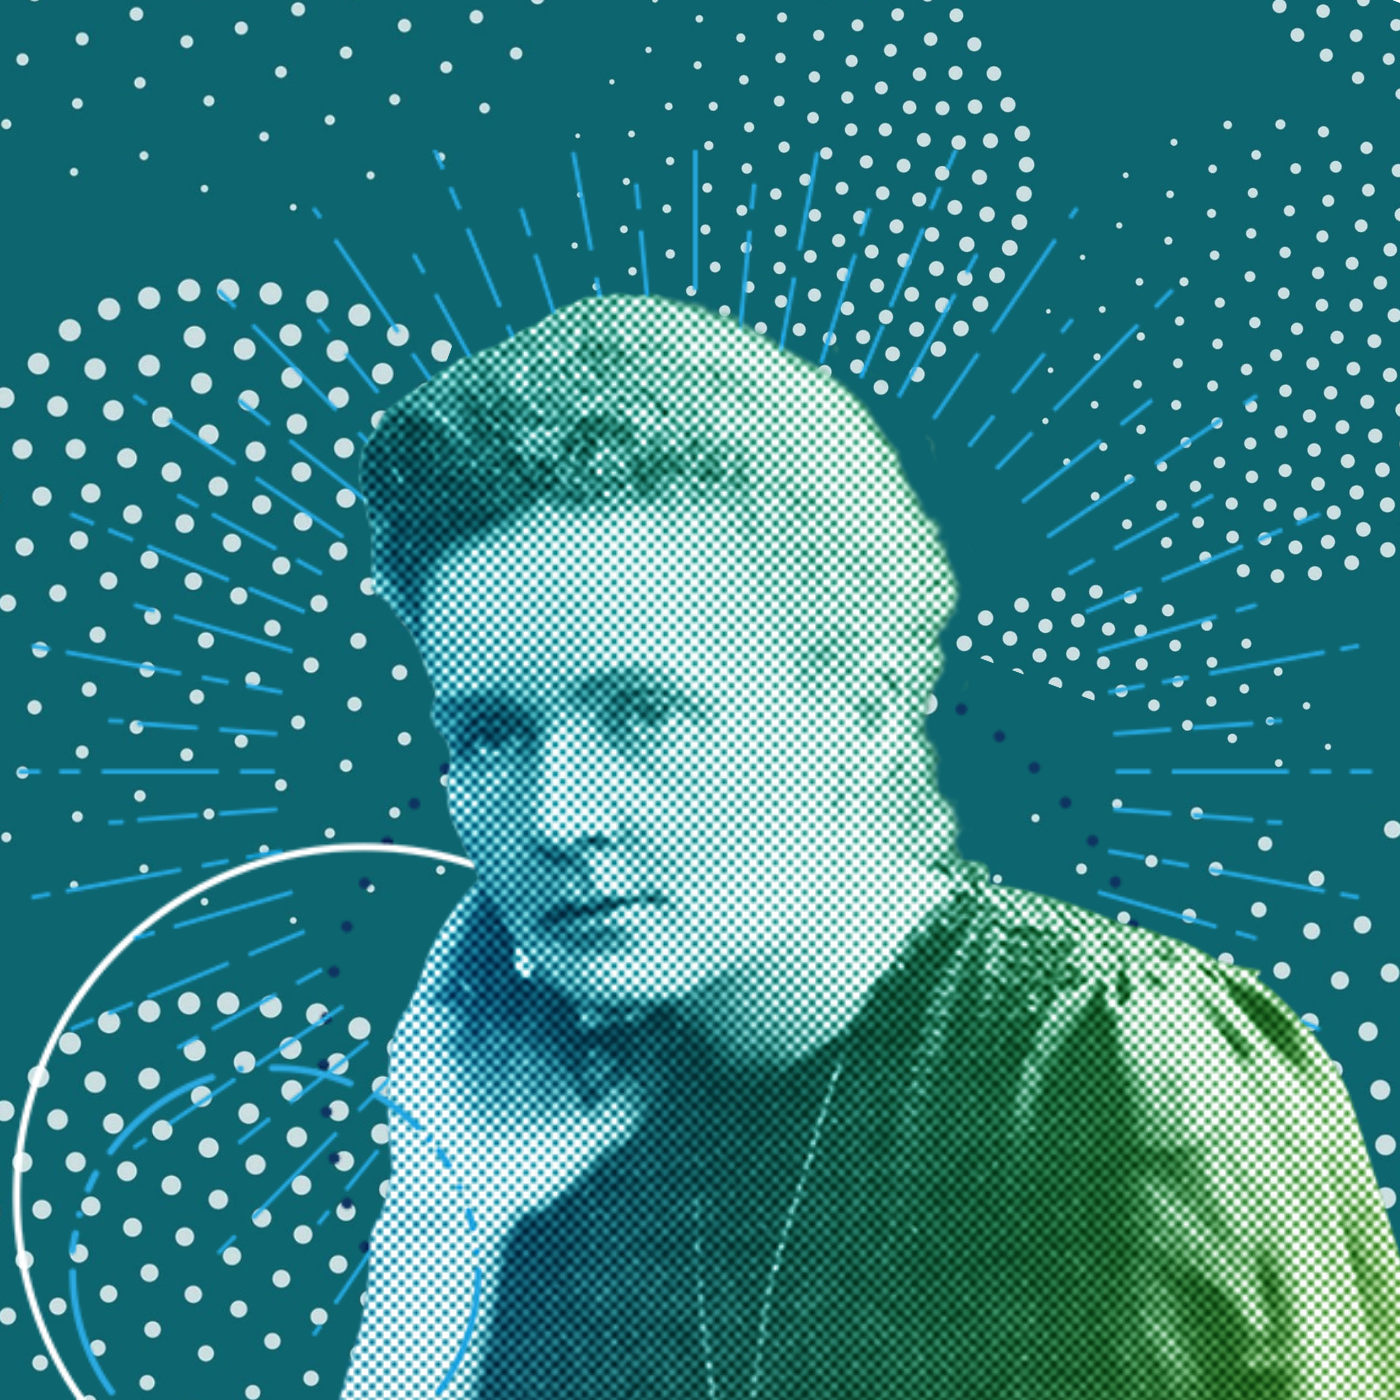 Marie Curie, female scientist, brought X-Rays to WW1 Frontlines